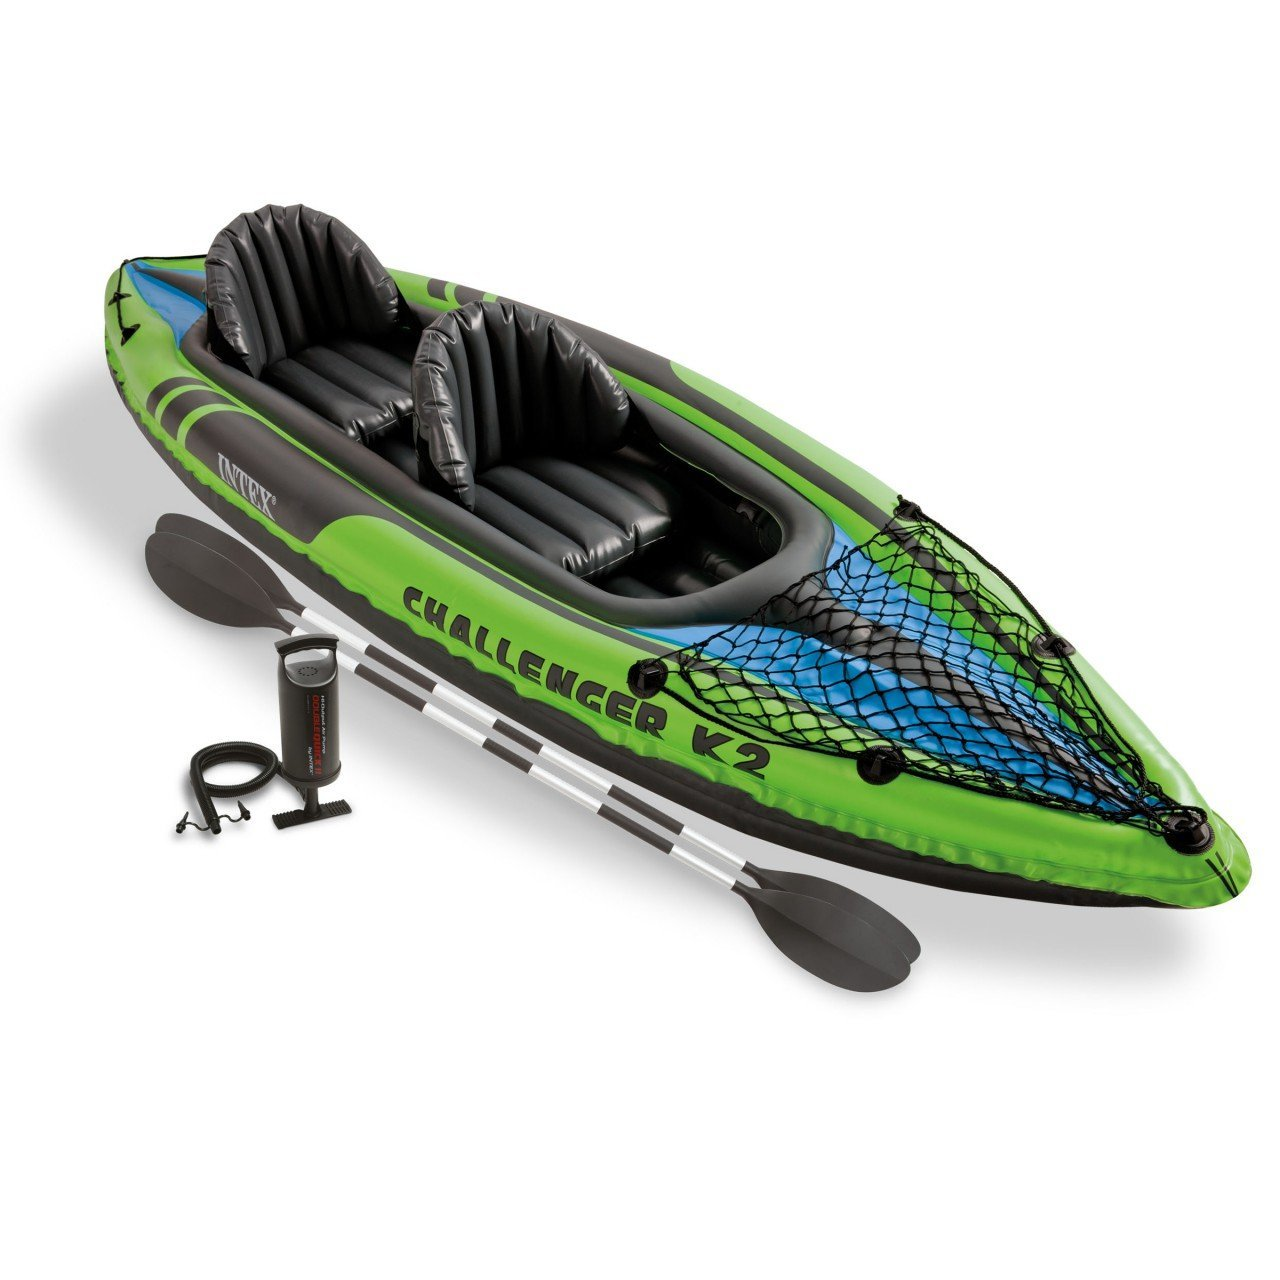 Intex Challenger K2 Kayak